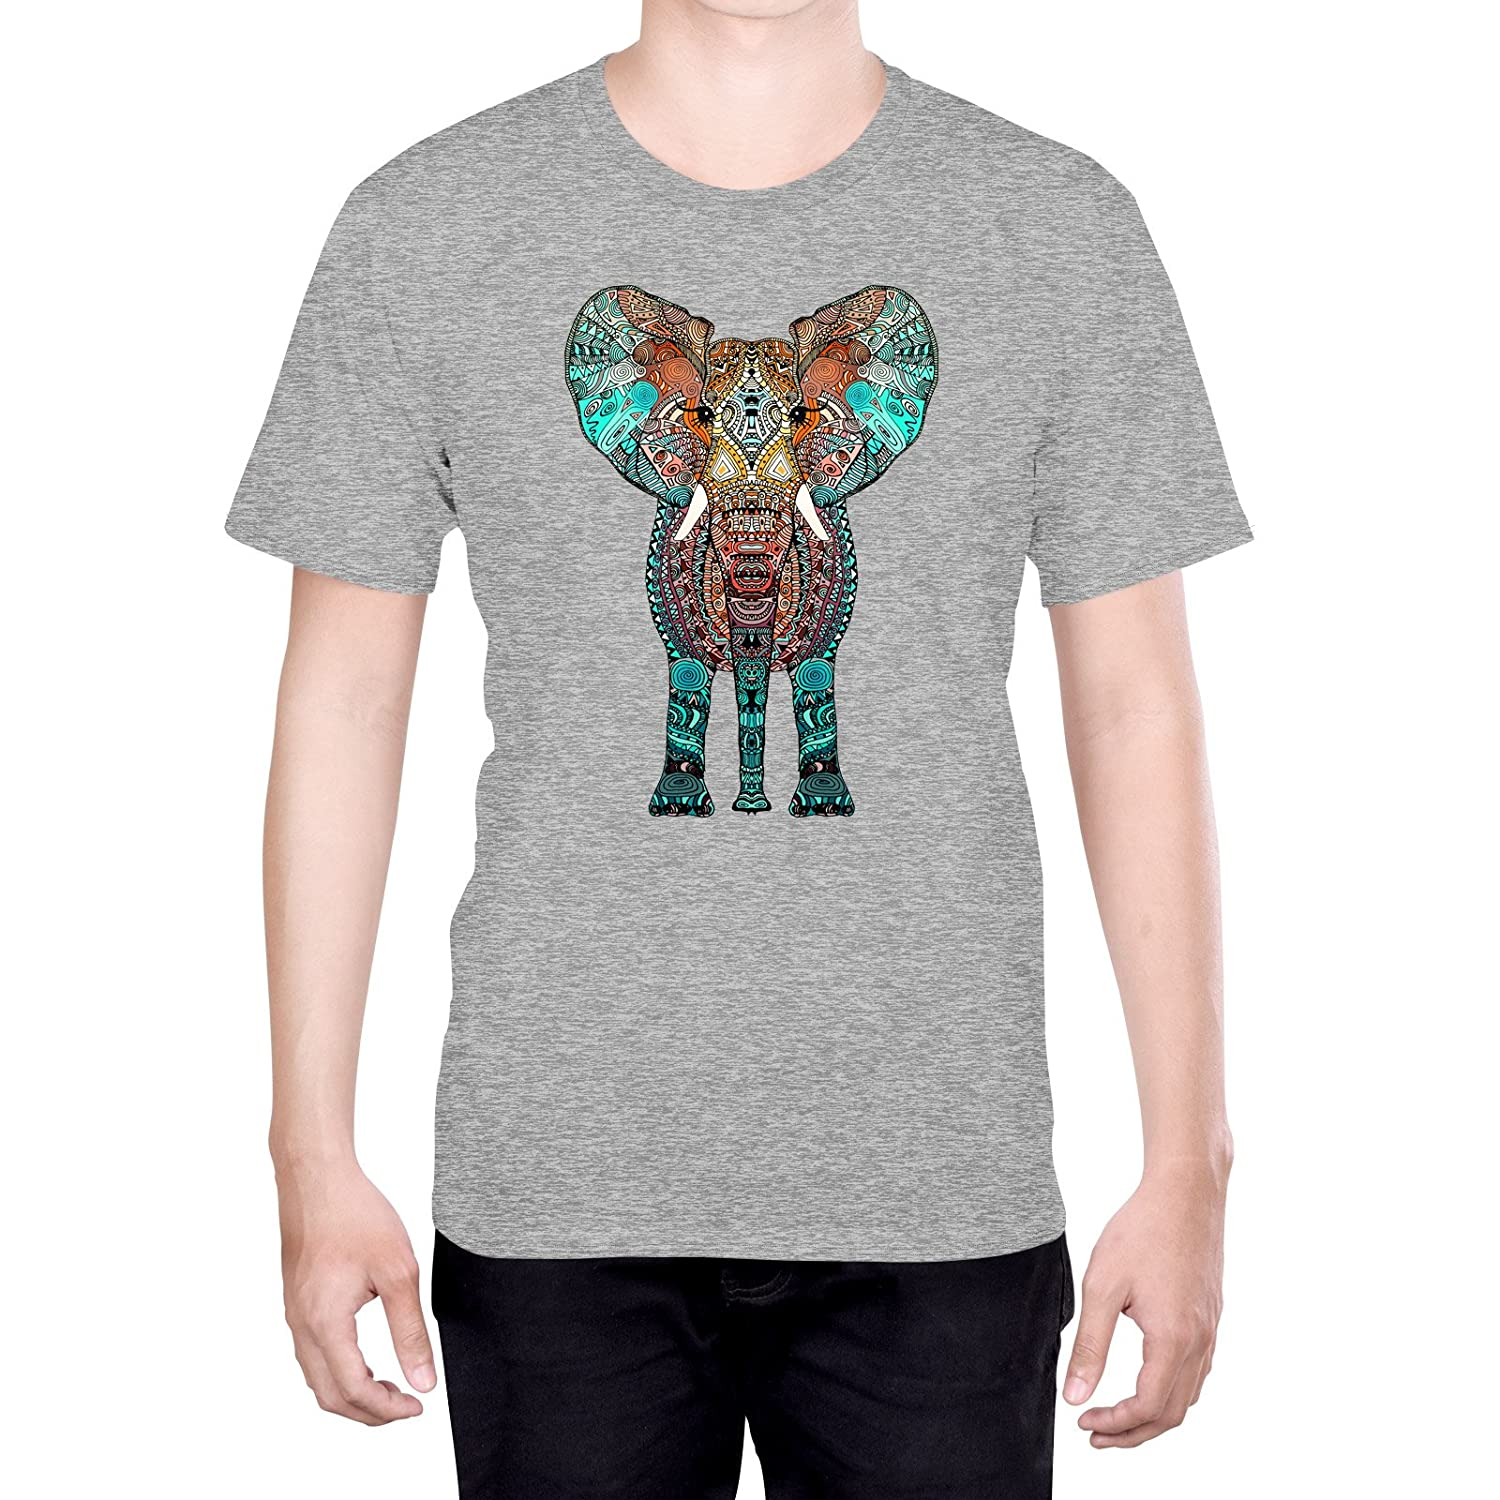 Official Monika Strigel Aztec Elephant Art S - Small Black T-Shirt for Men